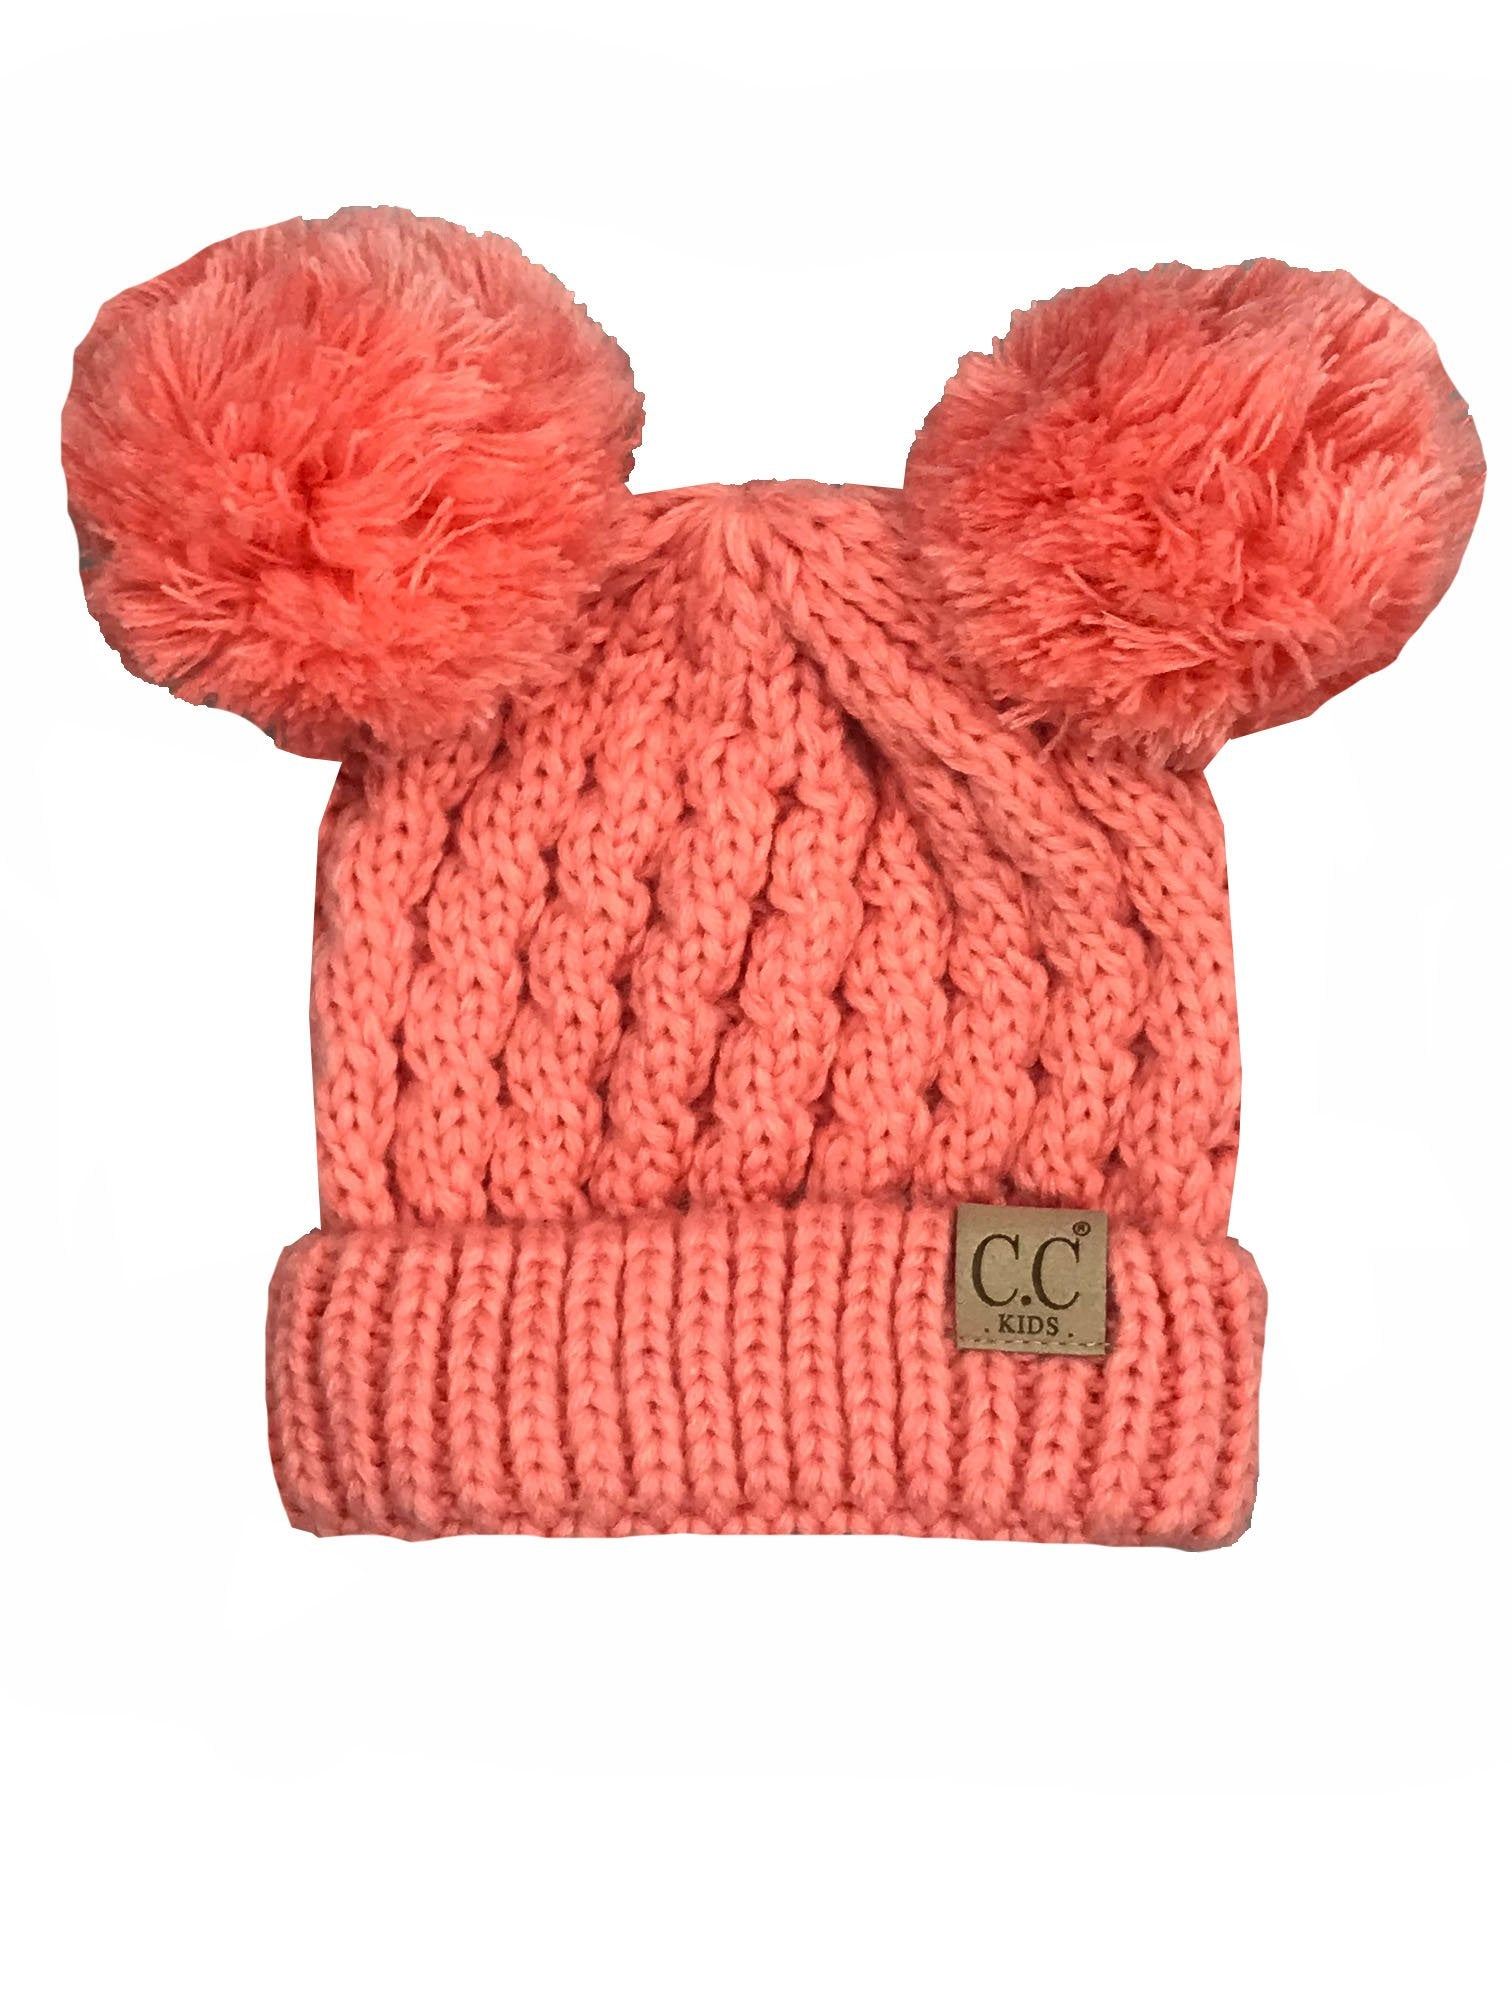 Kid-24 Coral Youth Beanie